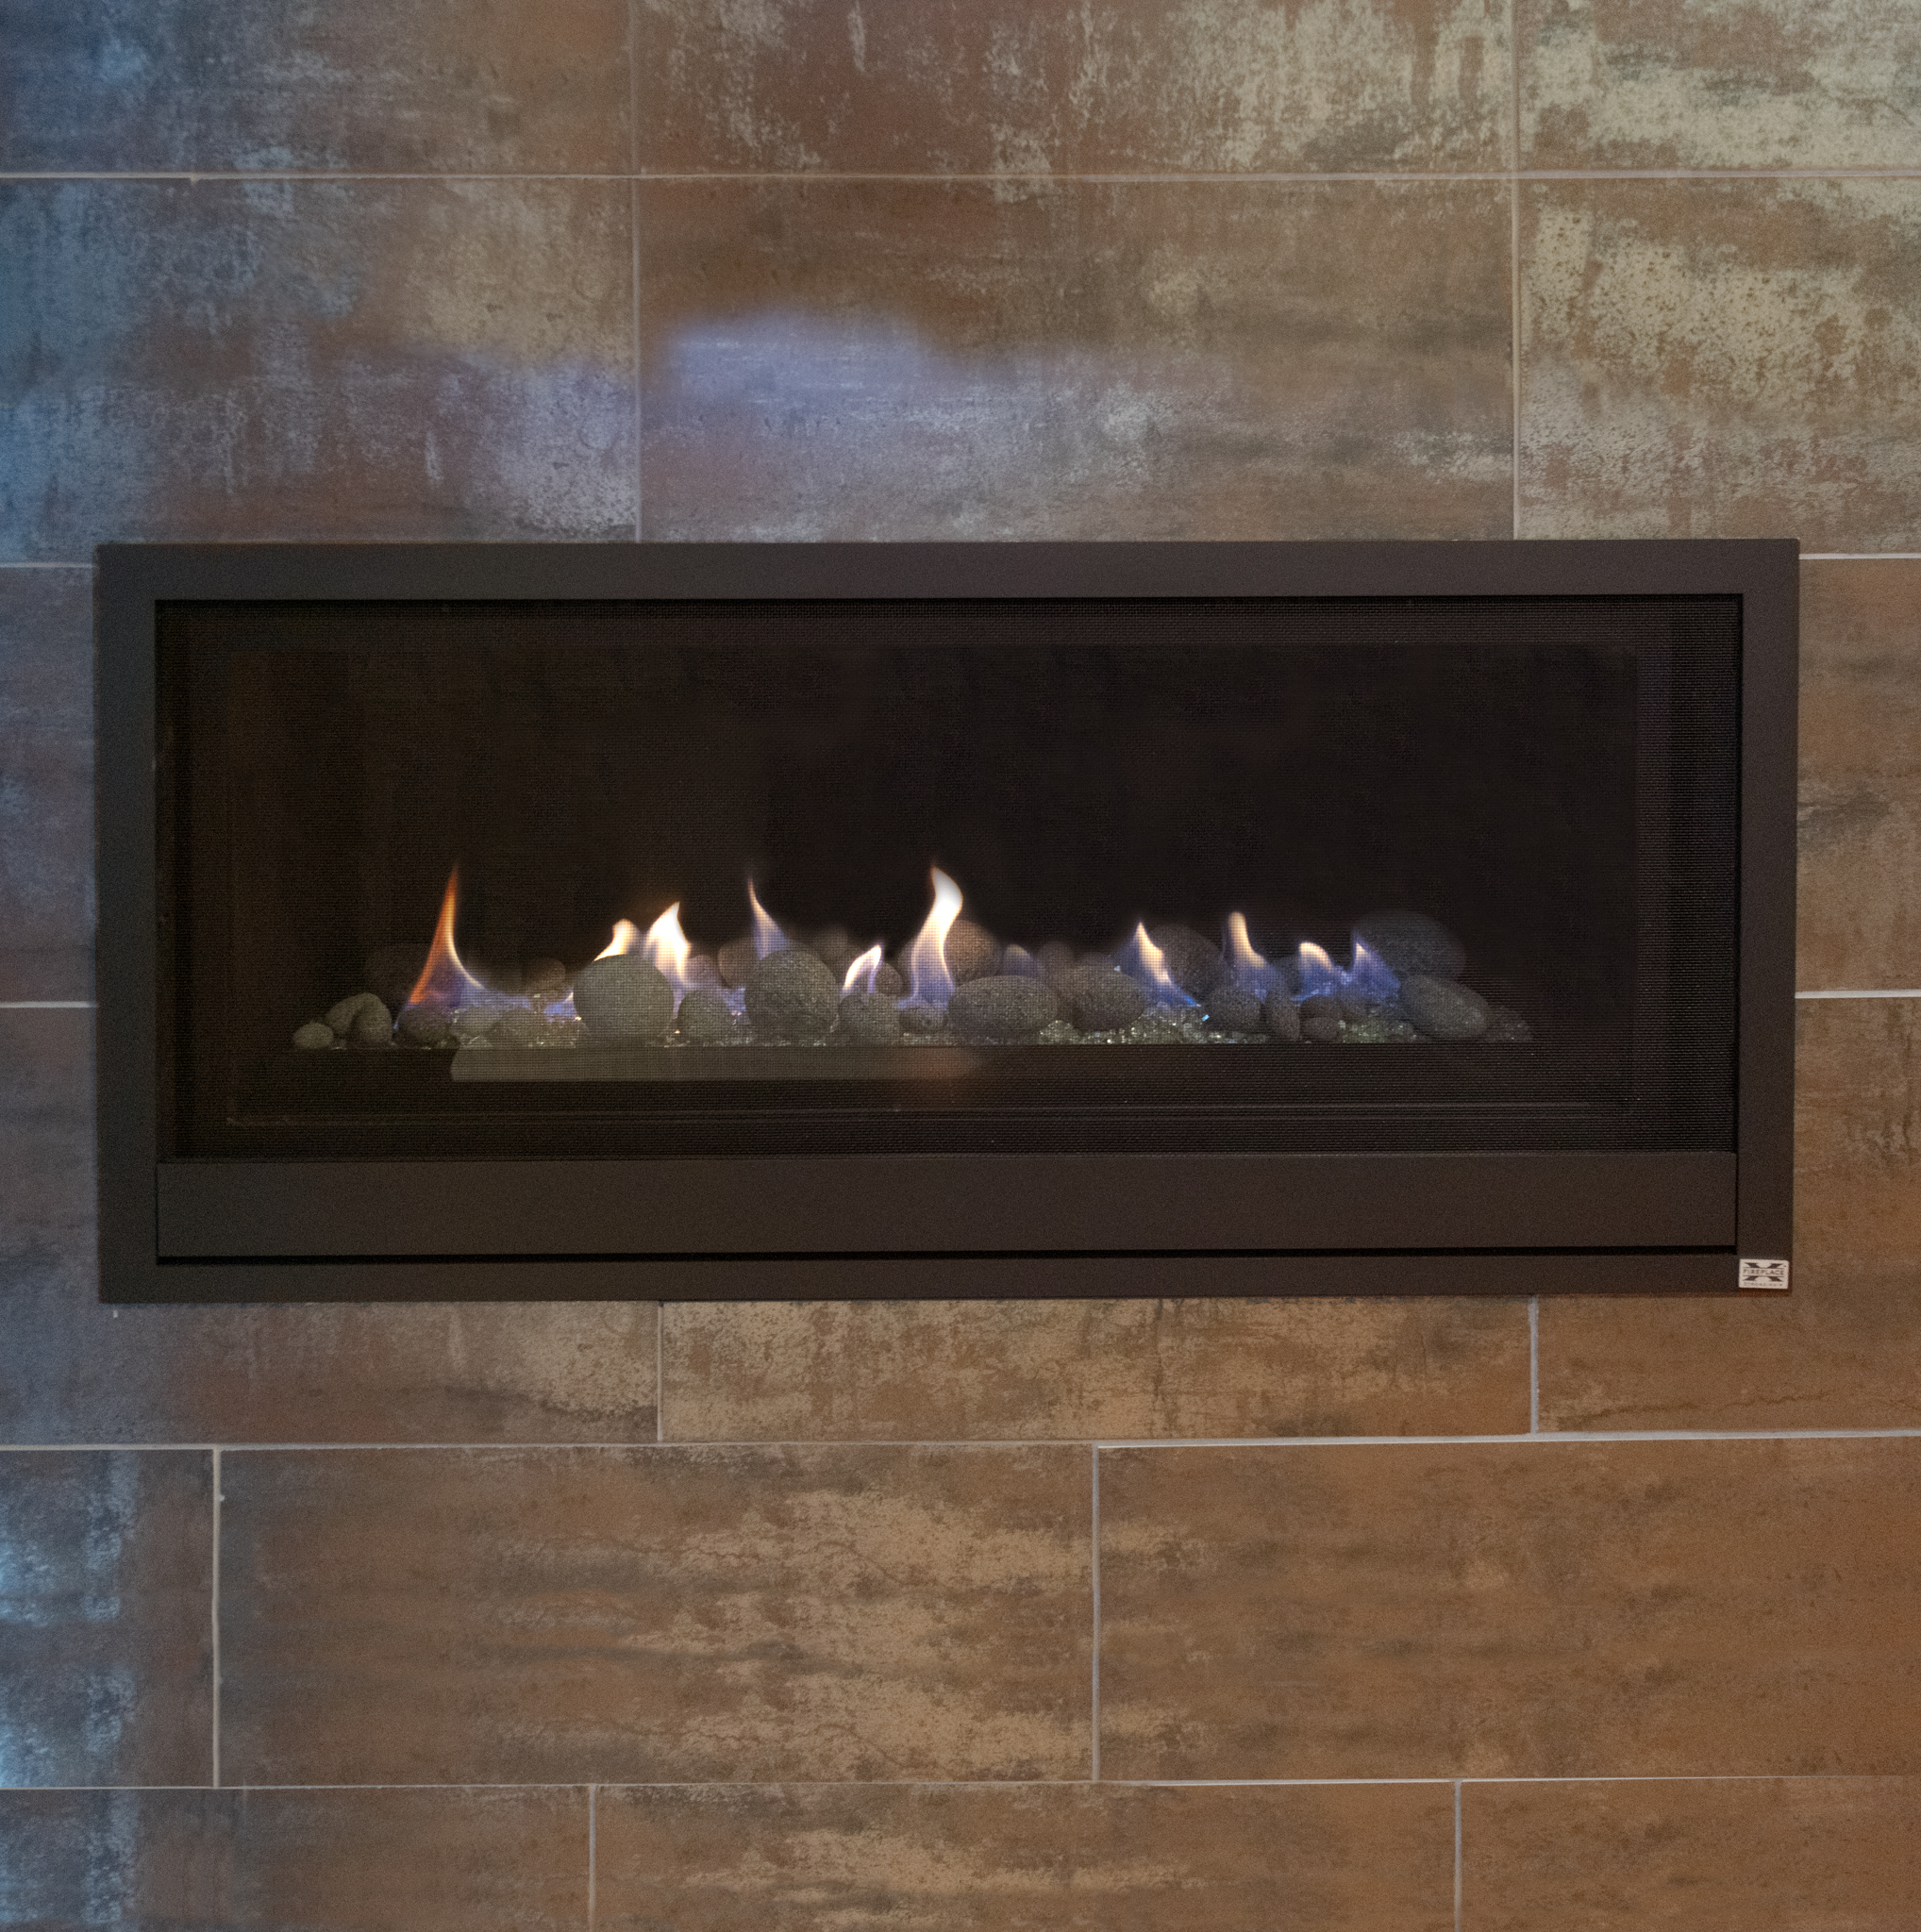 FireplaceX Pro-Builder 42 - ‧ Direct Vent Gas Fireplace - 25,000 BTU‧ Standing Pilot Millivolt‧ Platinum Glass Burner Media‧ Decorative Tumbled Stones· Flush to Wall Design‧ Operates in a Power Outage‧ Trendy Linear Style